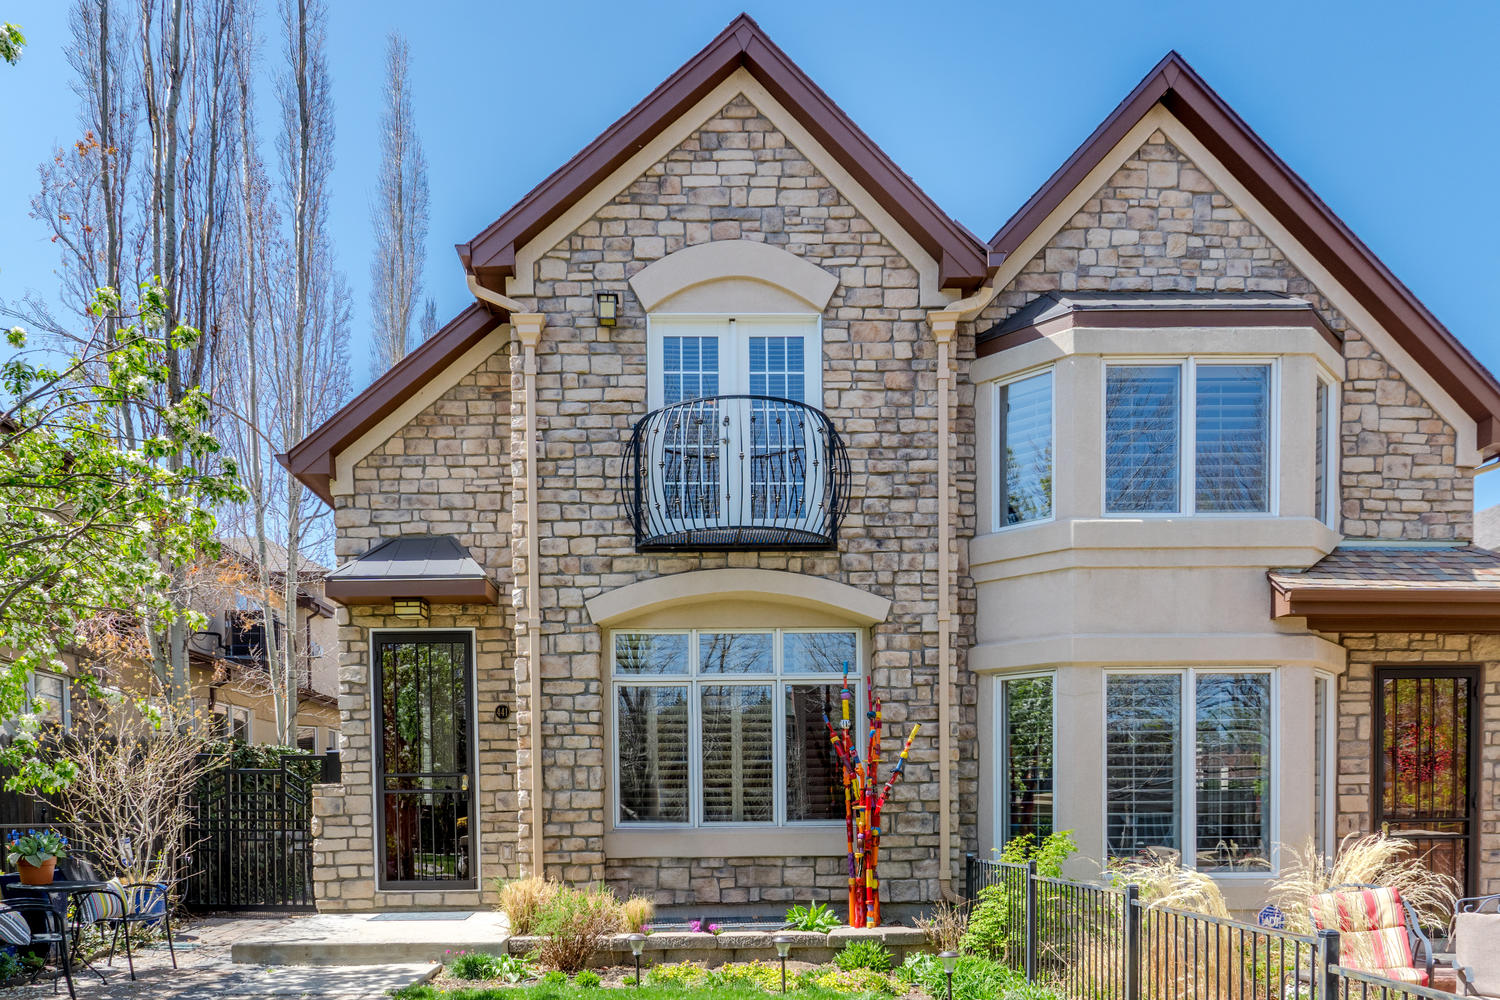 Single Family Home for Sale at Exceptional Townhome in Cherry Creek North! 441 Jackson Street Denver, Colorado, 80206 United States